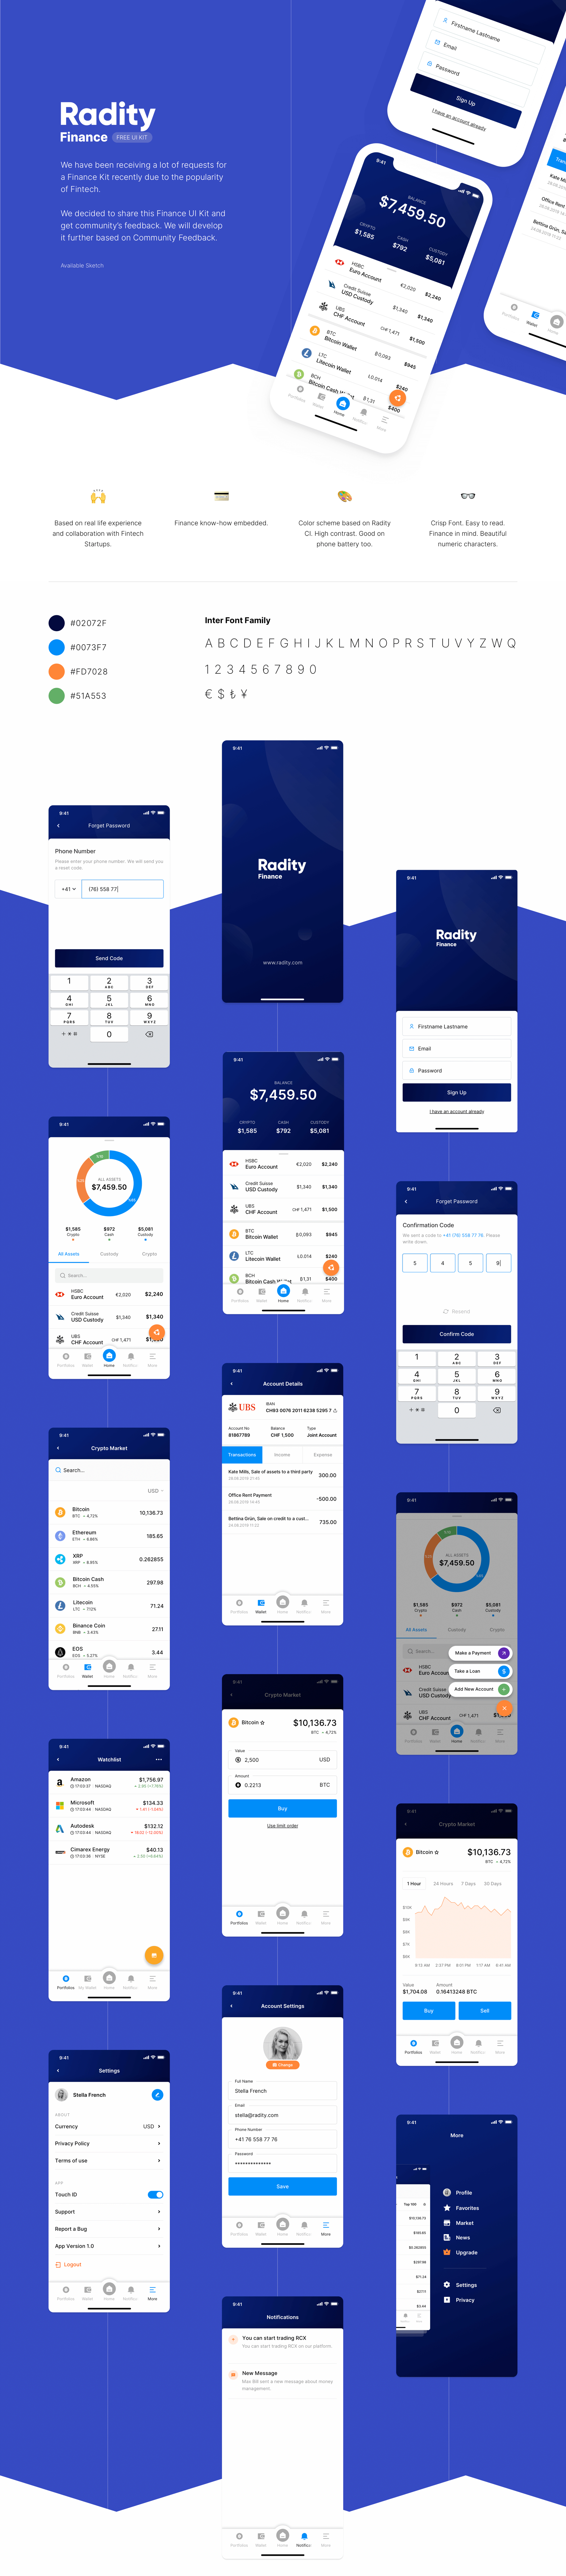 Radity - Finance UI Kit - We have been receiving a lot of requests for a Finance Kit recently due to the popularity of Fintech. We decided to share this Finance UI Kit and get community's feedback.